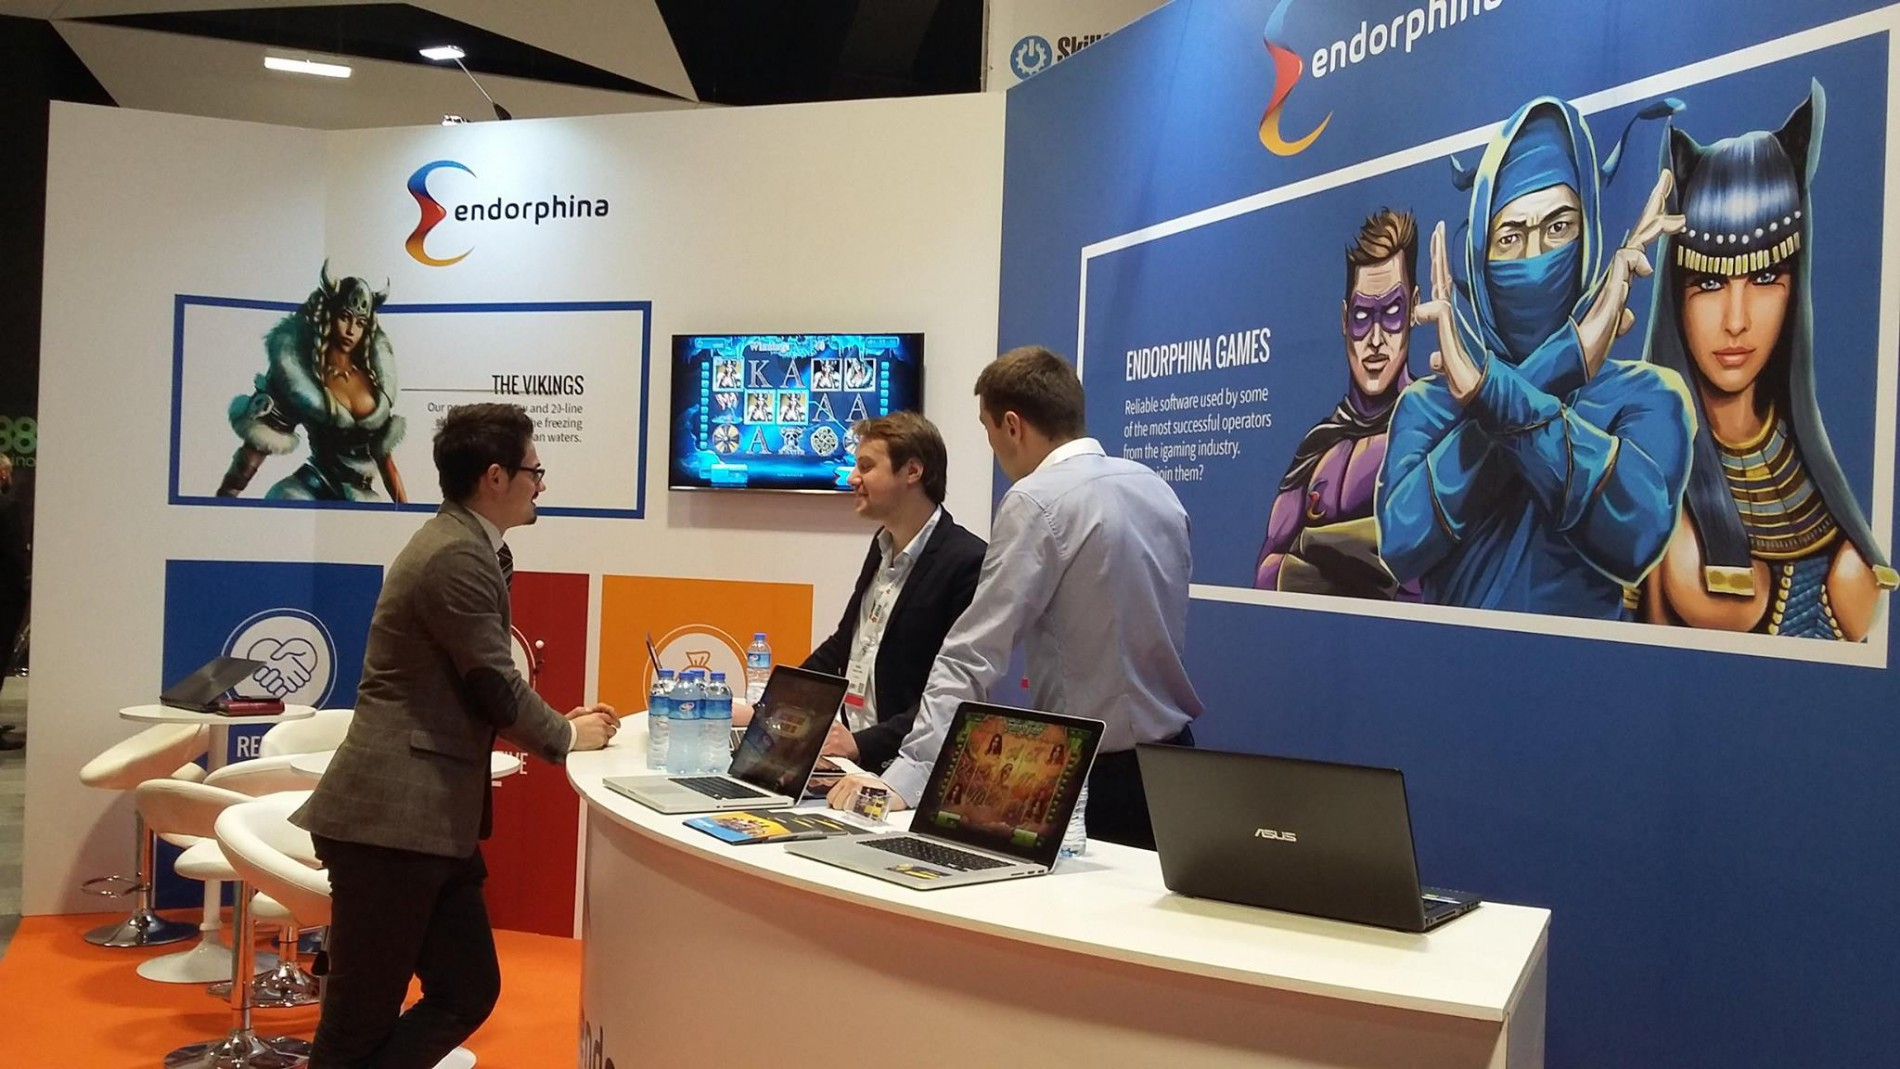 Endorphina at SiGMA 2015 | CASINO PLATFORM PROVIDER